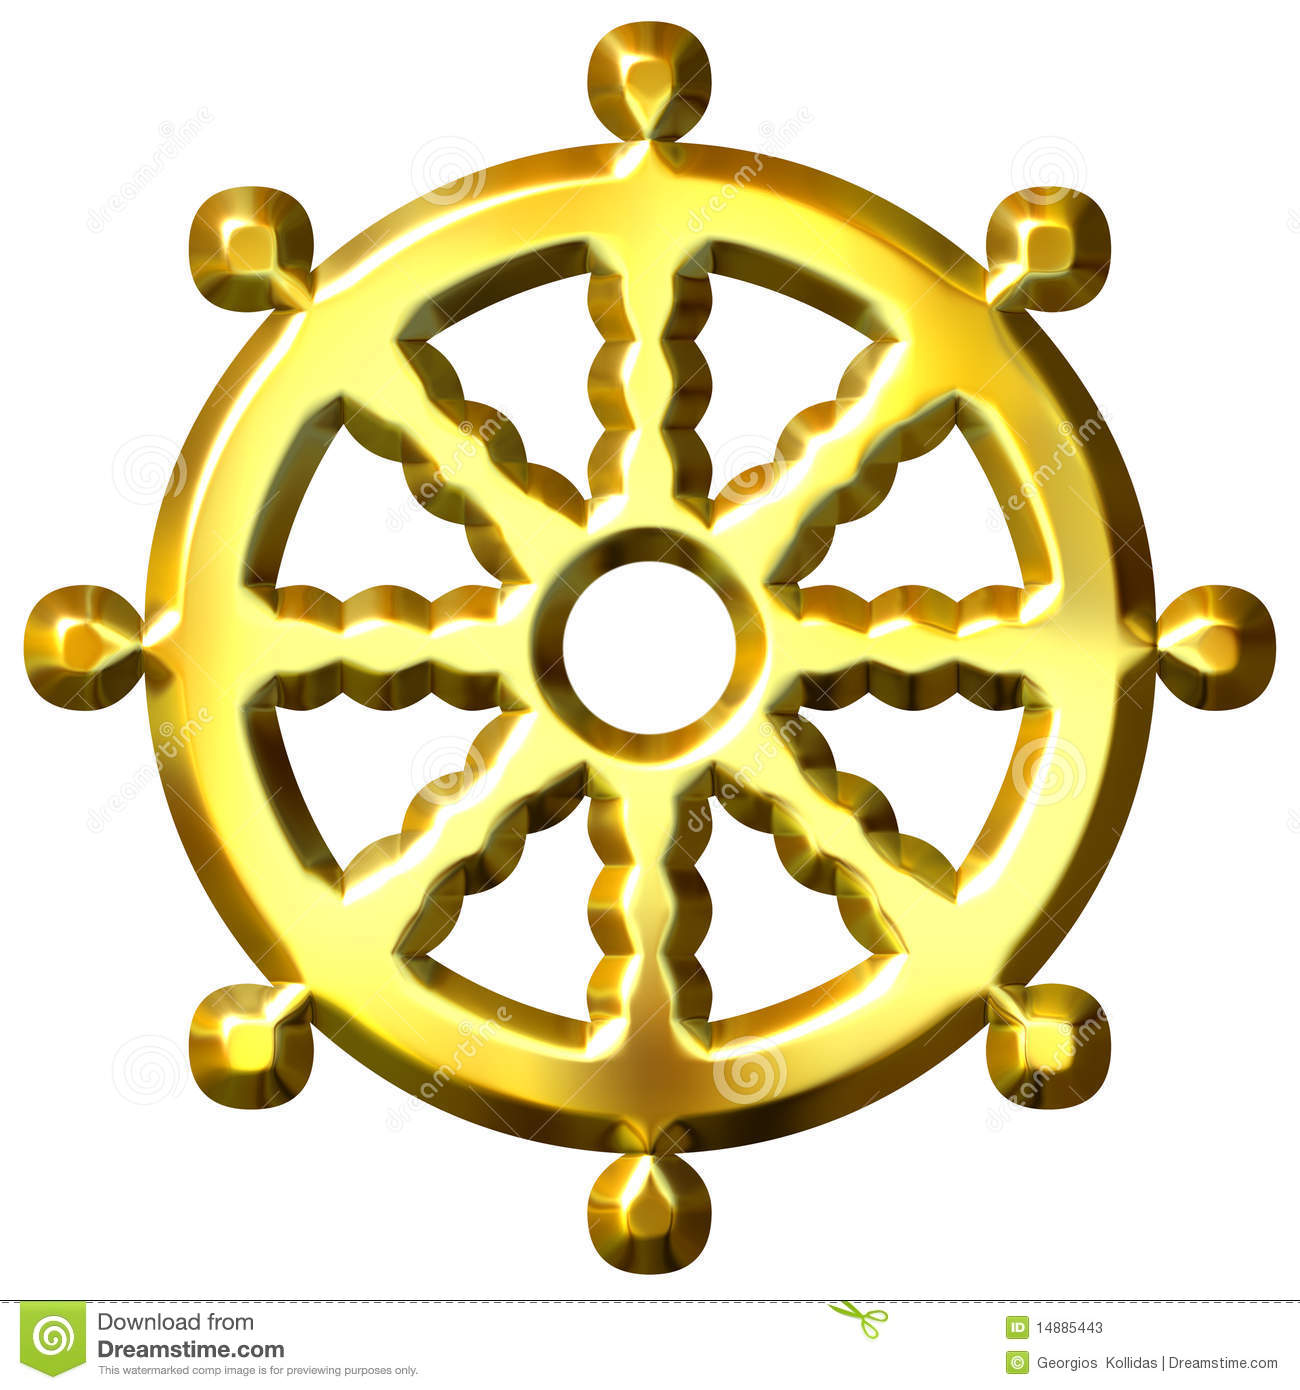 Golden Dharma Wheel Buddhism Religion Symbol Stock Vector